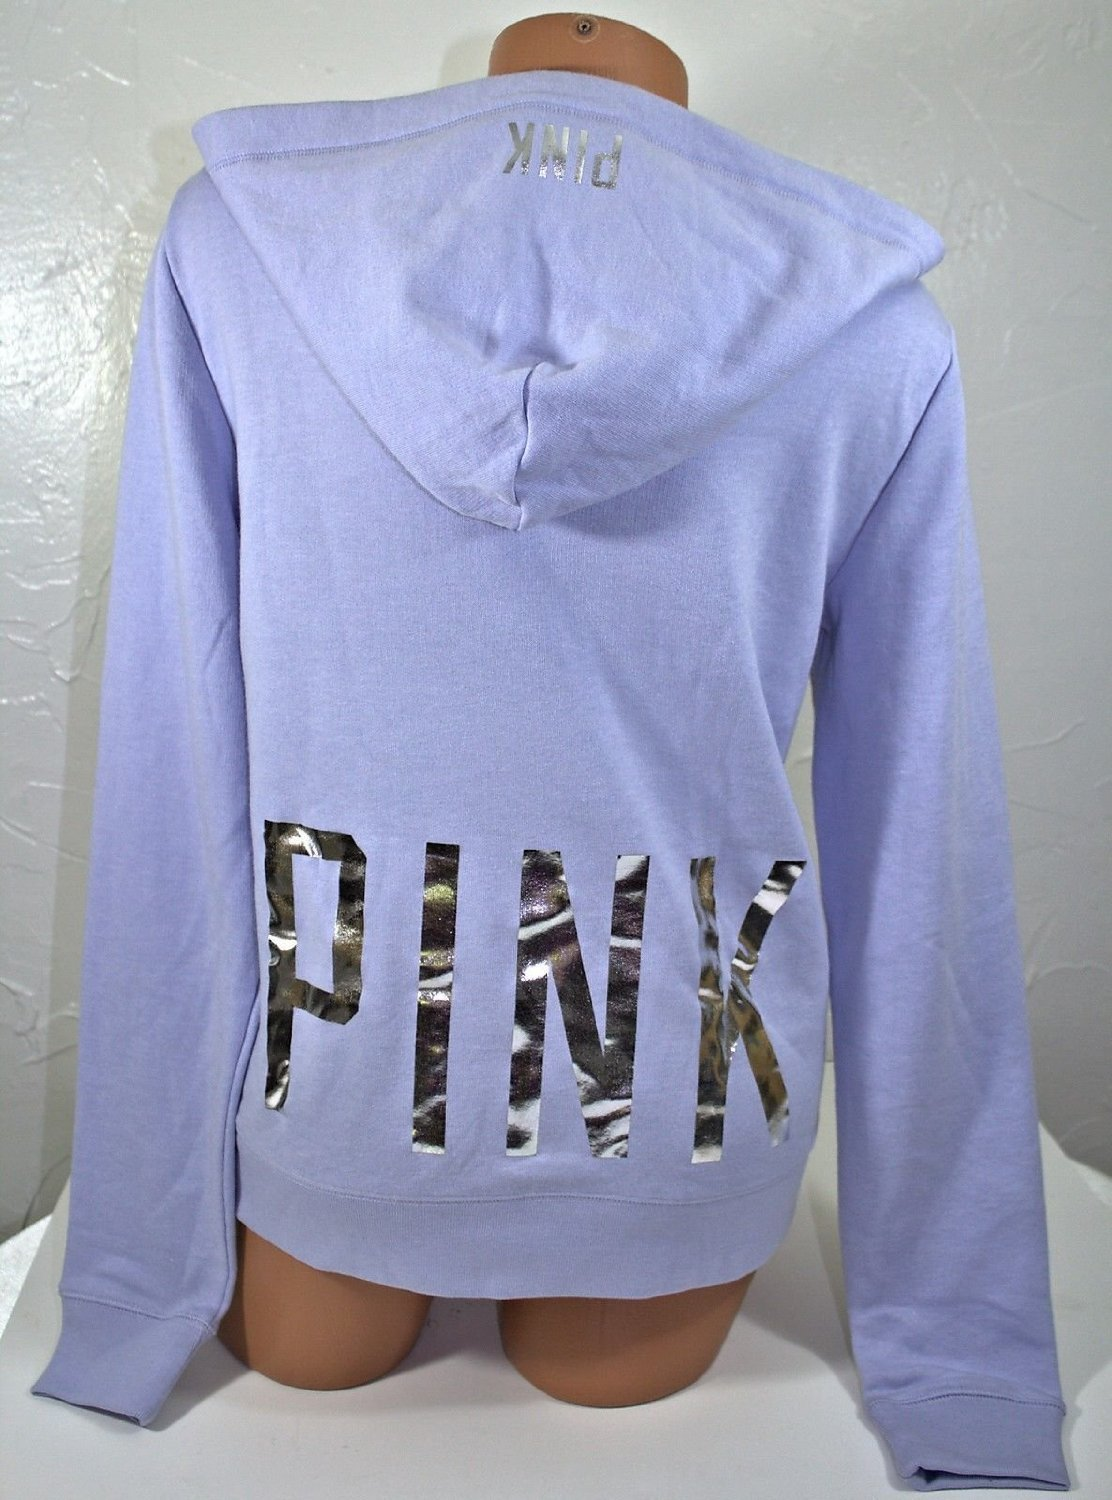 Victoria's Secret Pink Lavender Bling Sequins Perfect Zip Jacket Hoodie Extra Small XS by Victoria's Secret